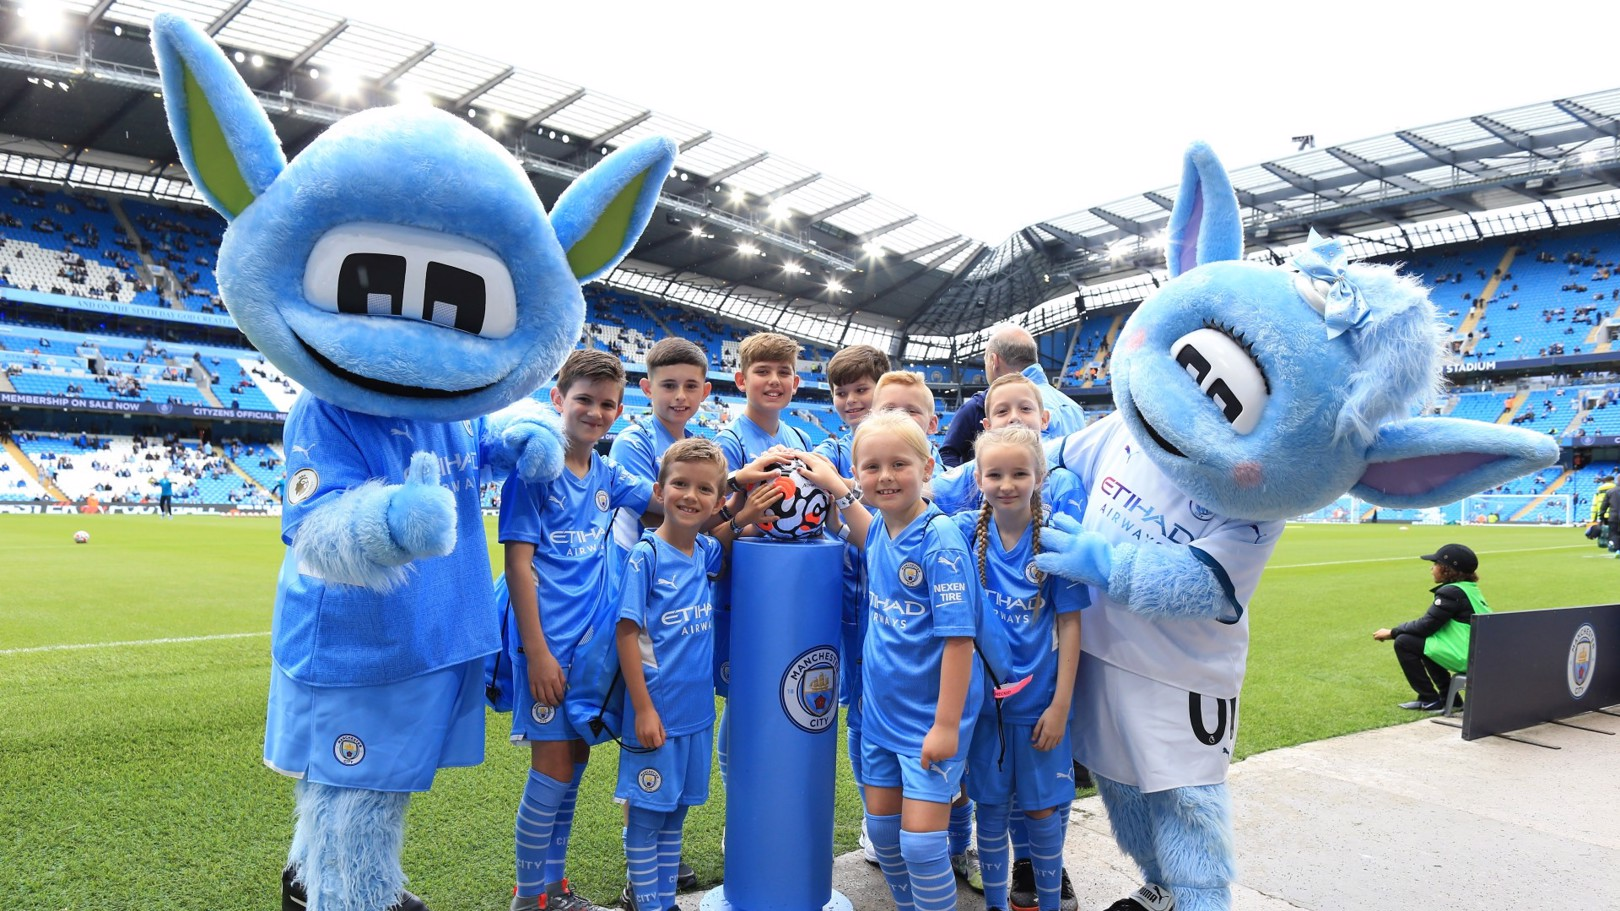 Exclusive matchday experience available for Cityzens Junior Members